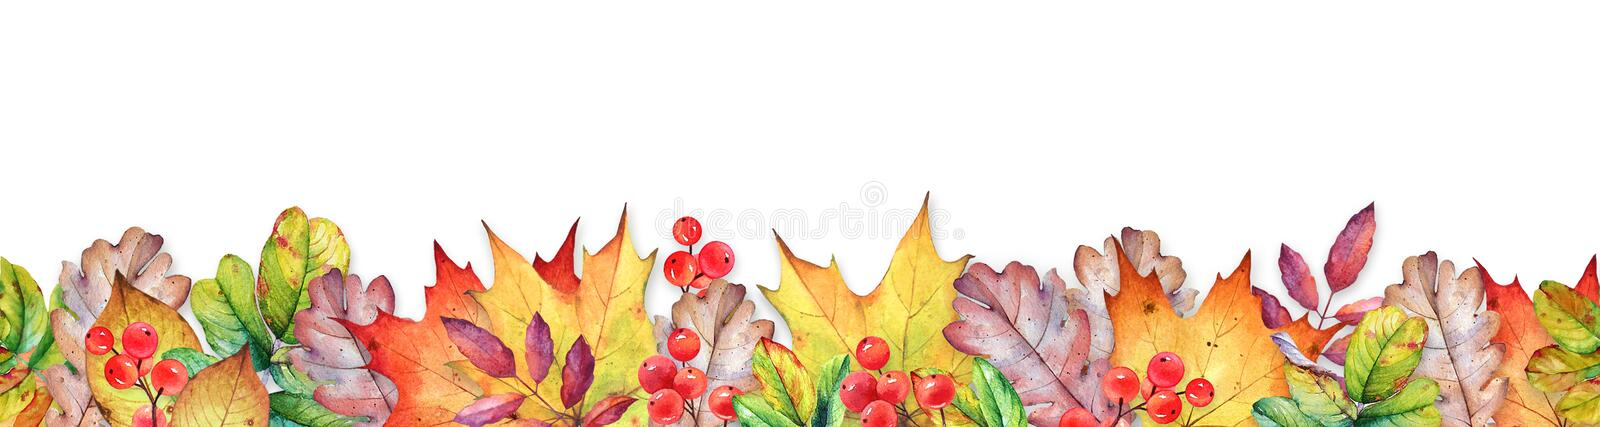 Seamless border with watercolor autumn leaves and berries stock illustration